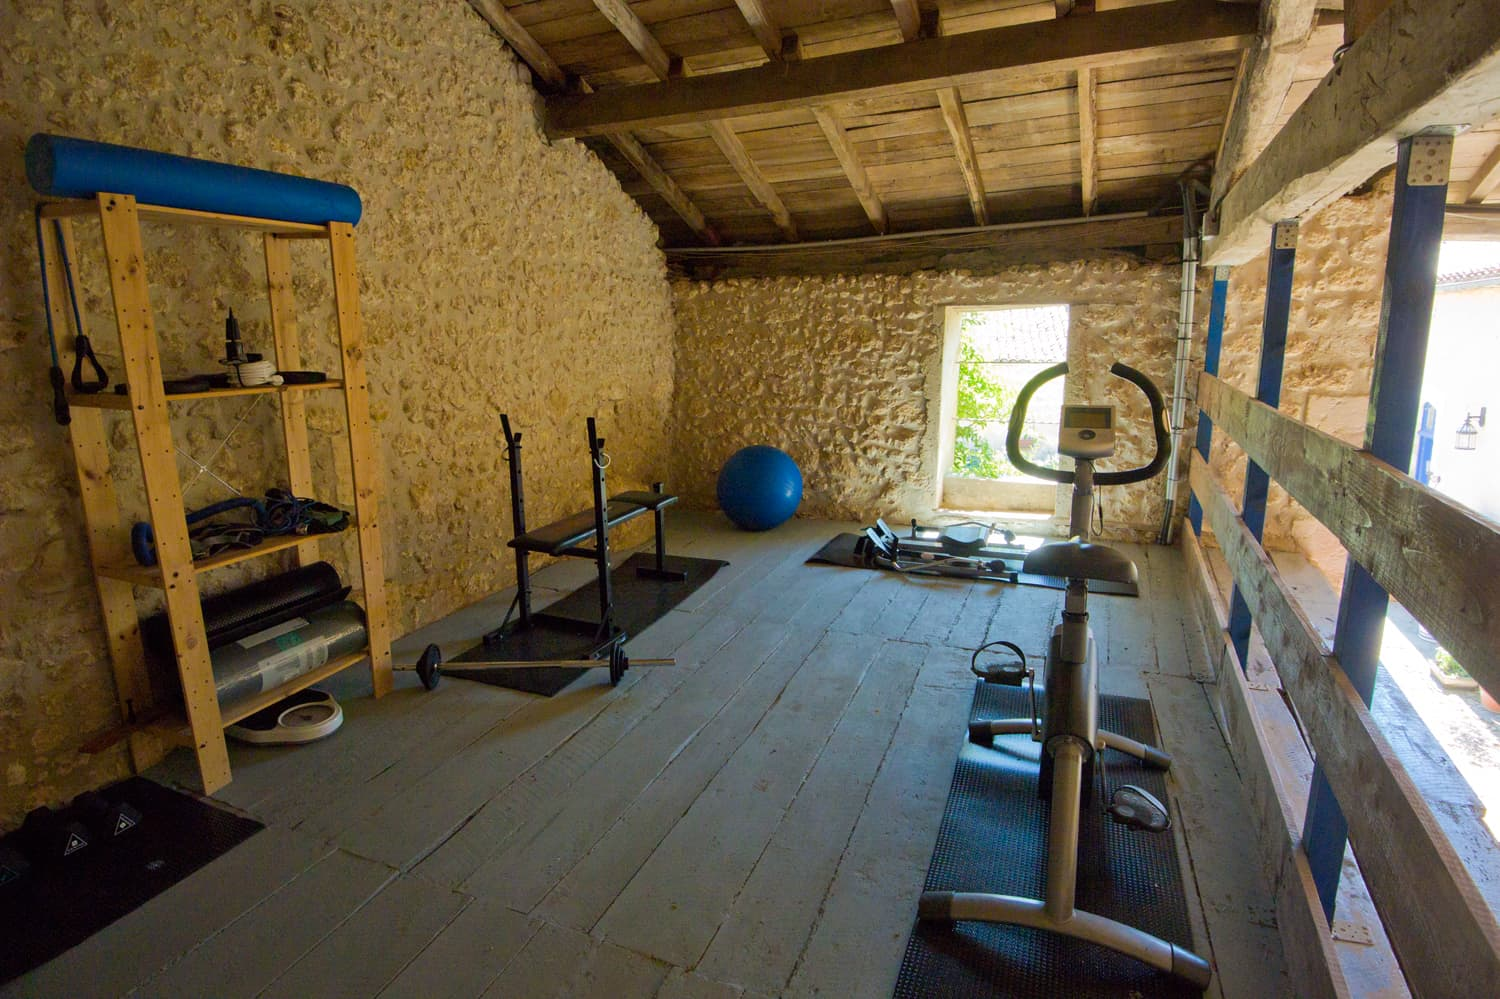 Gym in barn